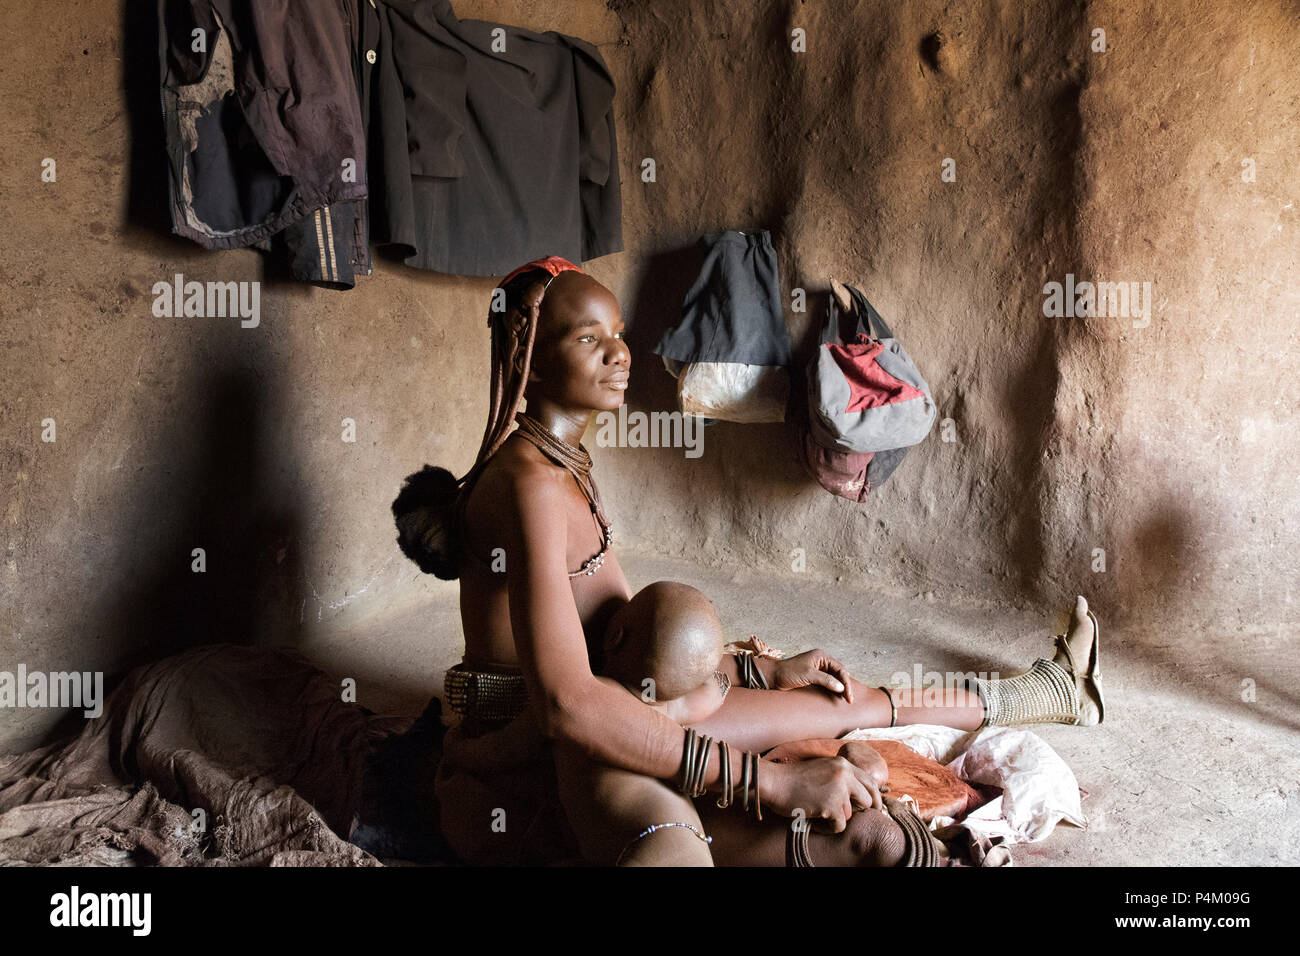 Portrait of a native Himba woman, Namibia - Stock Image